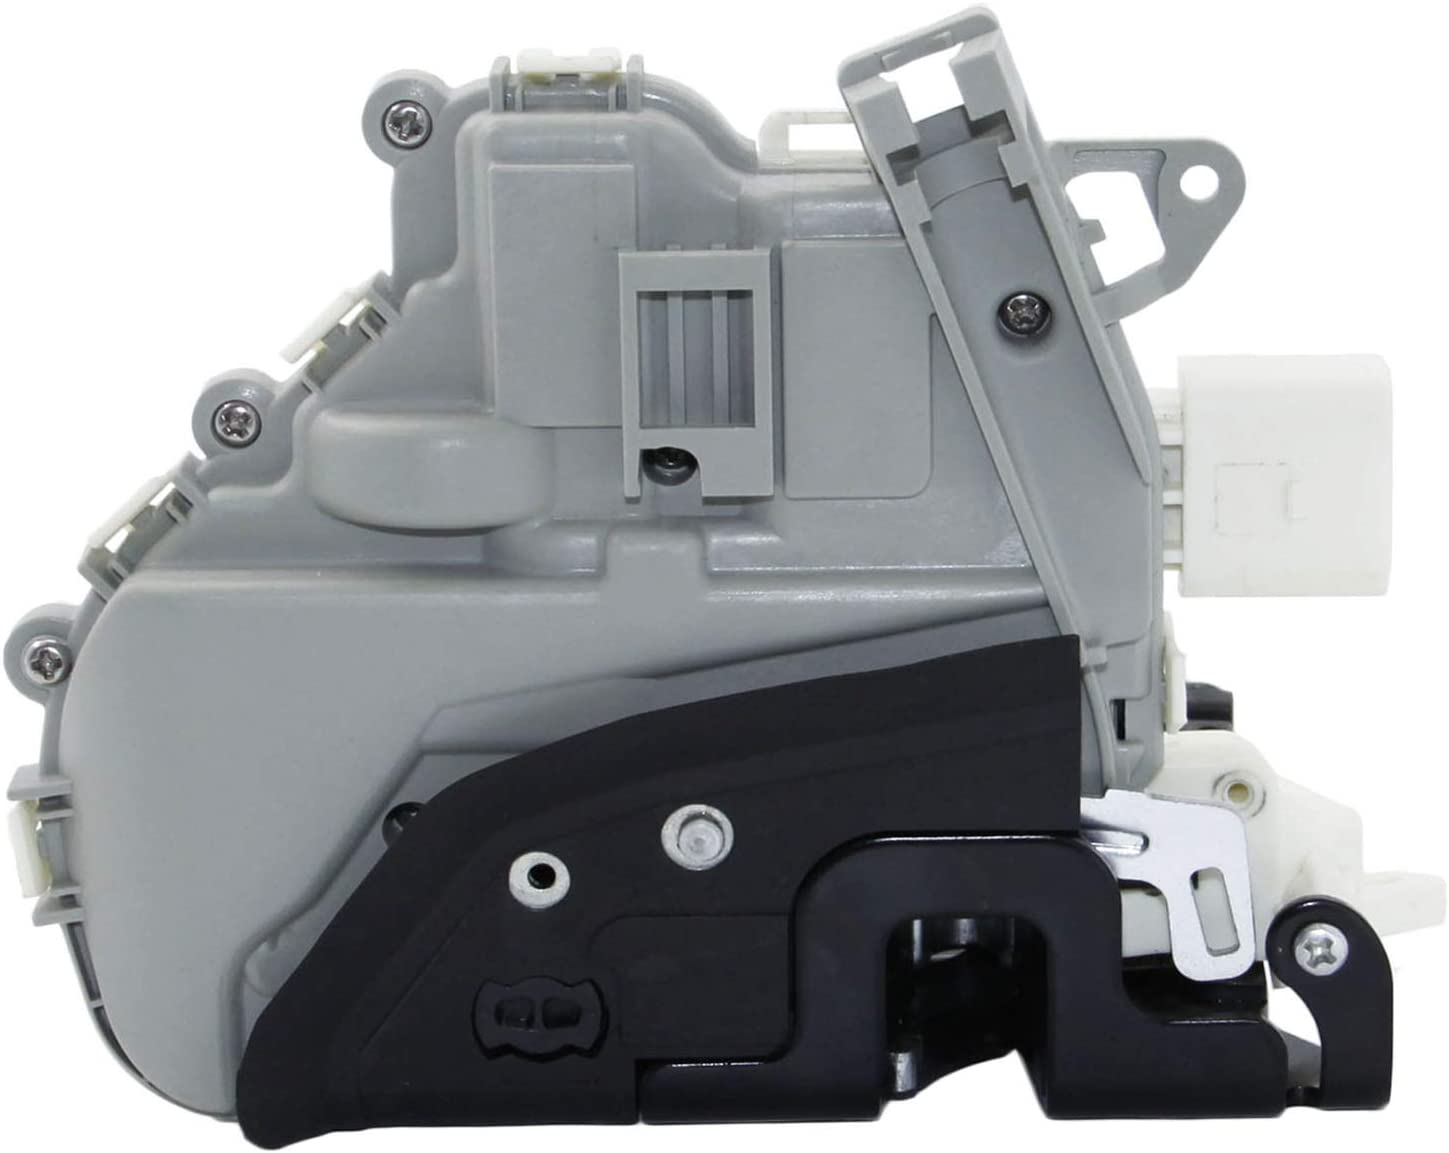 B8 Yu Chuang Motive Front Right Driver Side Door Lock Actuator Mechanism O//S for A4 1.8 2.0 2.7 3.0 3.2 quattro A5 Q3 Q5 Q7 TT Roadster 2.5 Coupe 8J2837016A 8J2 837 016 A